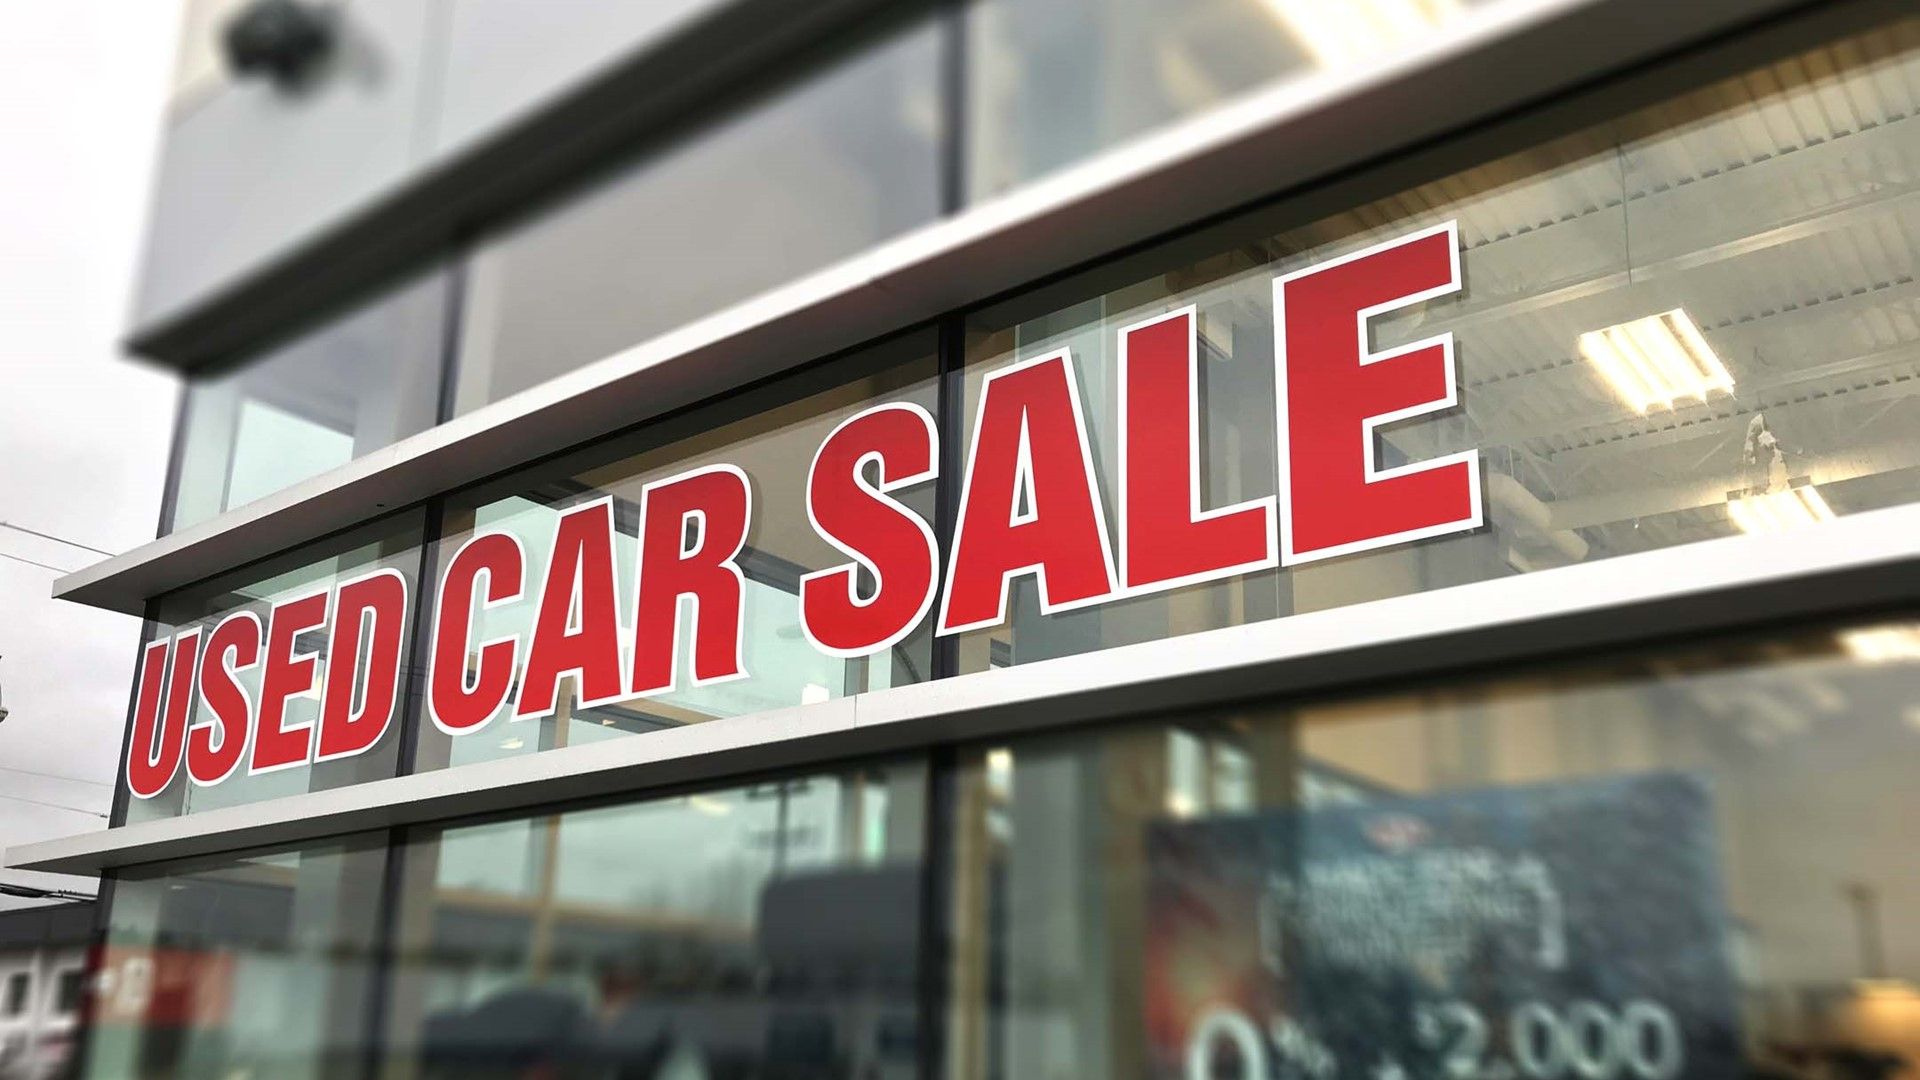 Buy used cars in Canada Online Emarketsafe Buy & Sell